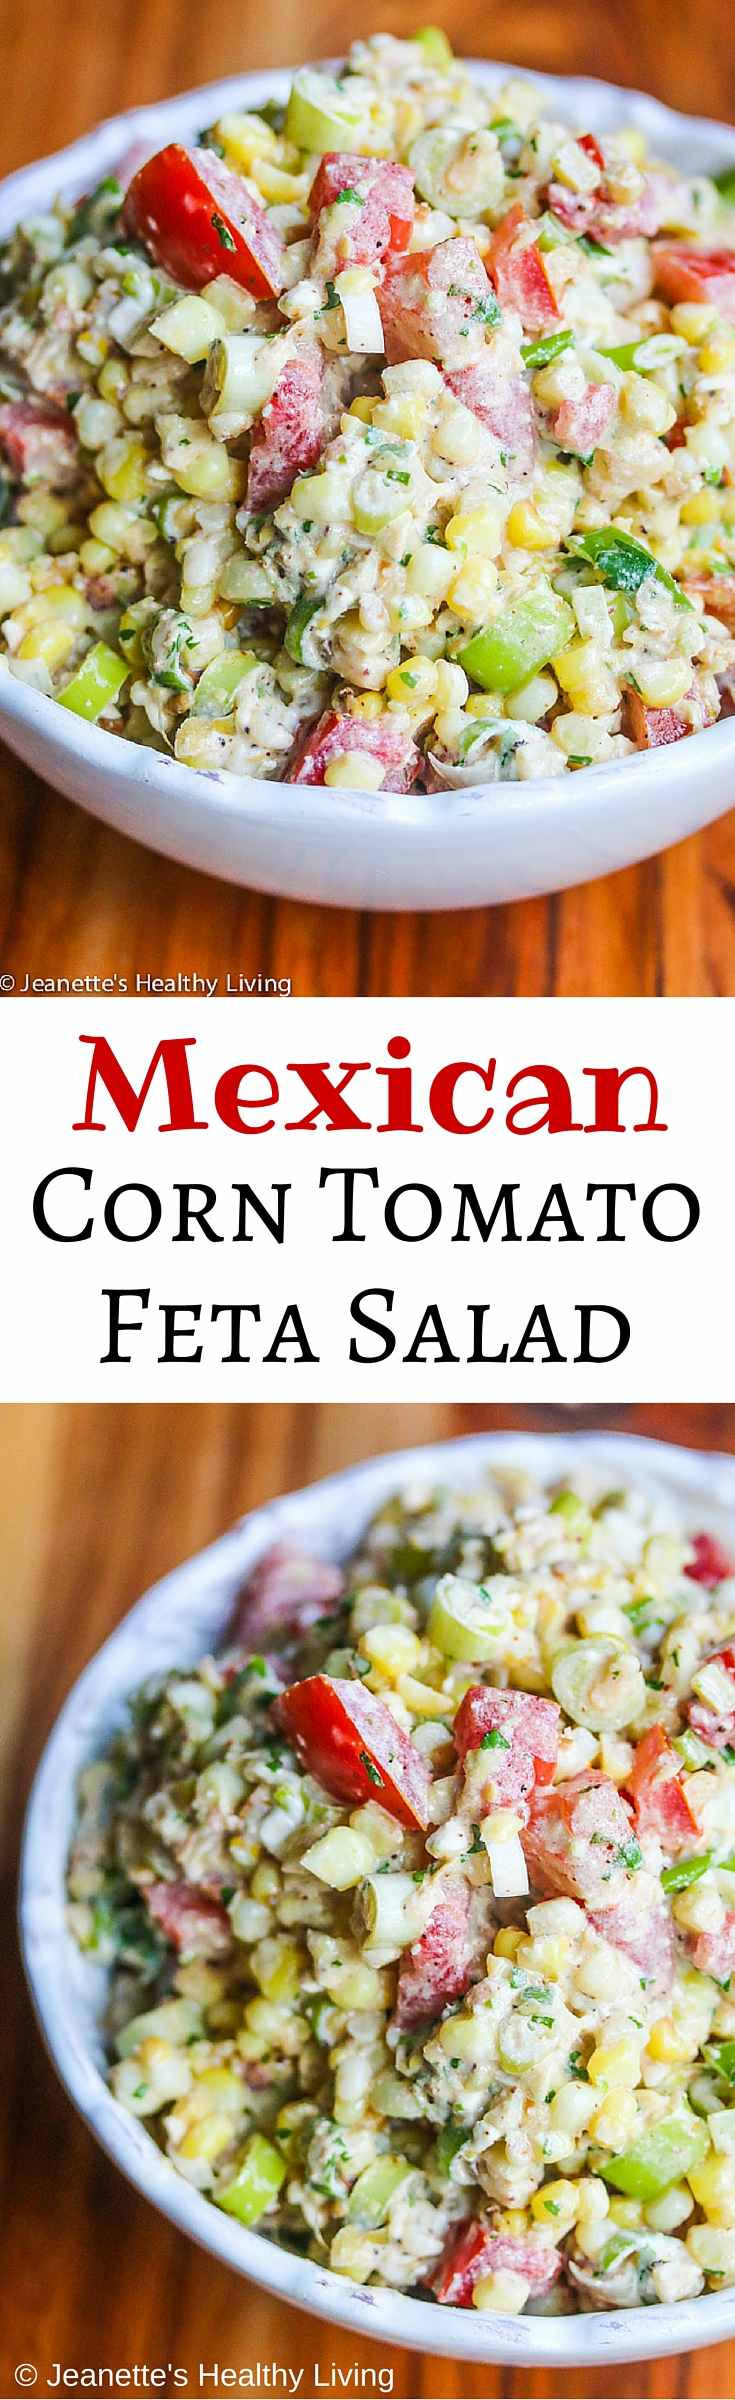 Mexican Corn Tomato Feta Salad - you'll find all the flavors of Mexican street corn are in this creamy summer salad